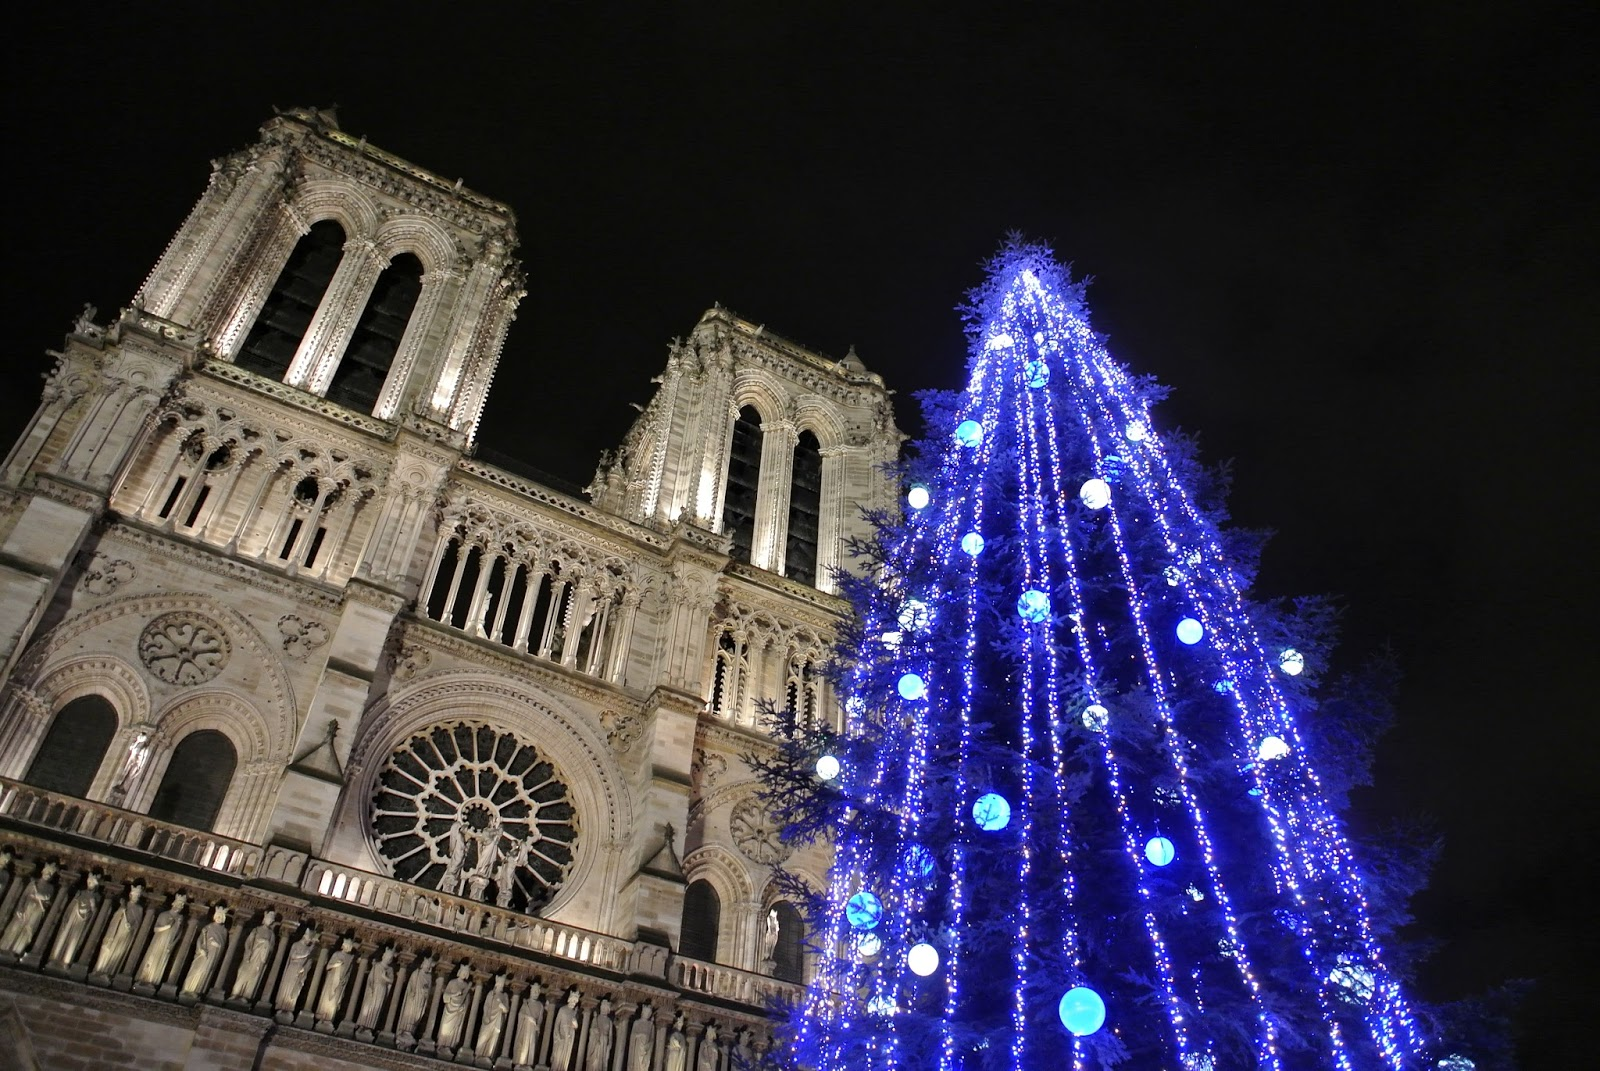 Le blog de gabrielle aznar les illuminations no l paris 2014 - Illumination a paris ...